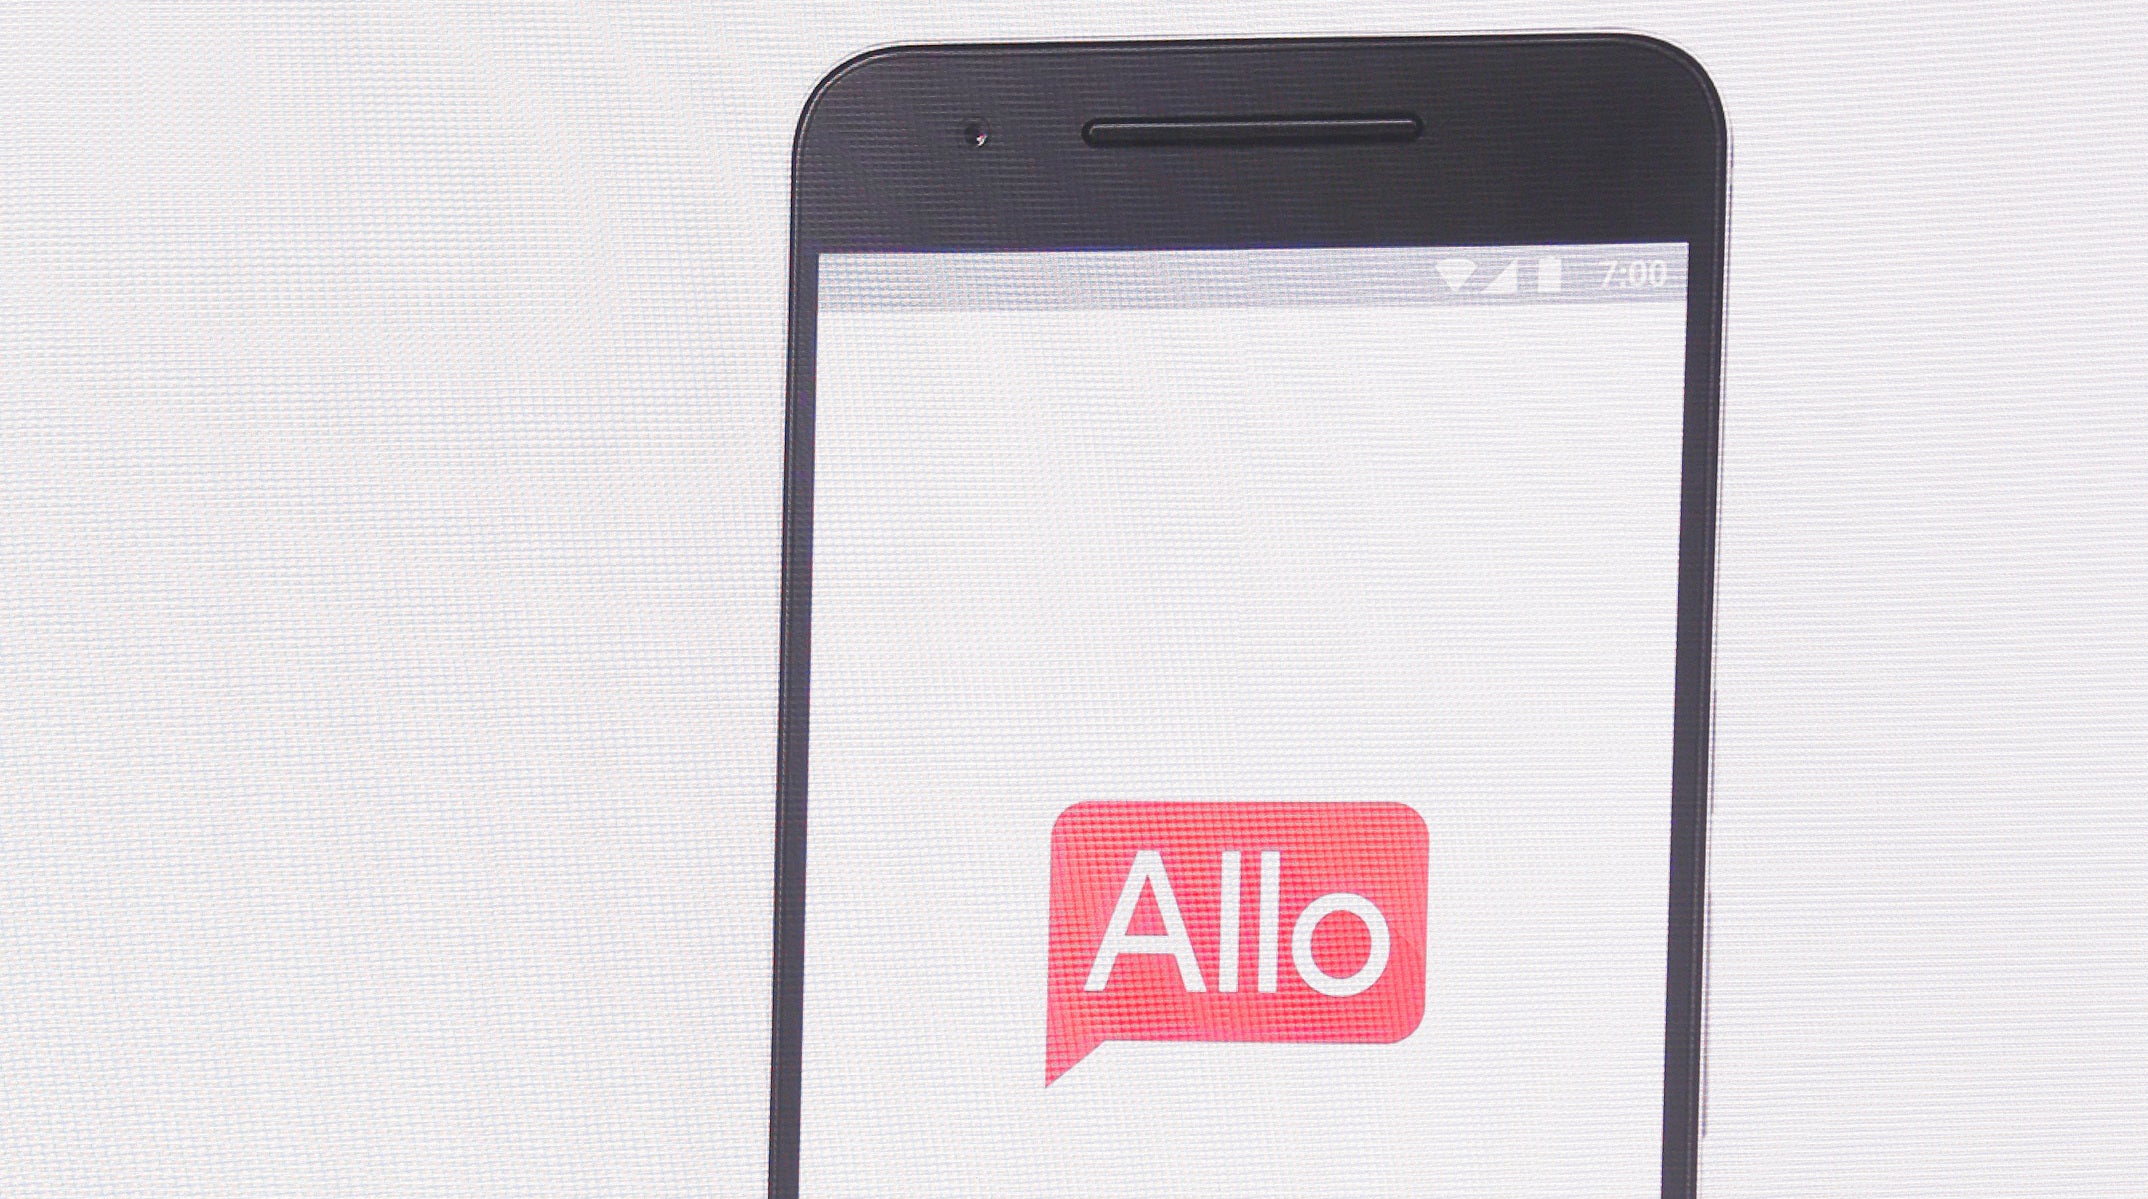 Google Kills Allo In Latest Attempt To Fix Its Terrible Messaging Strategy